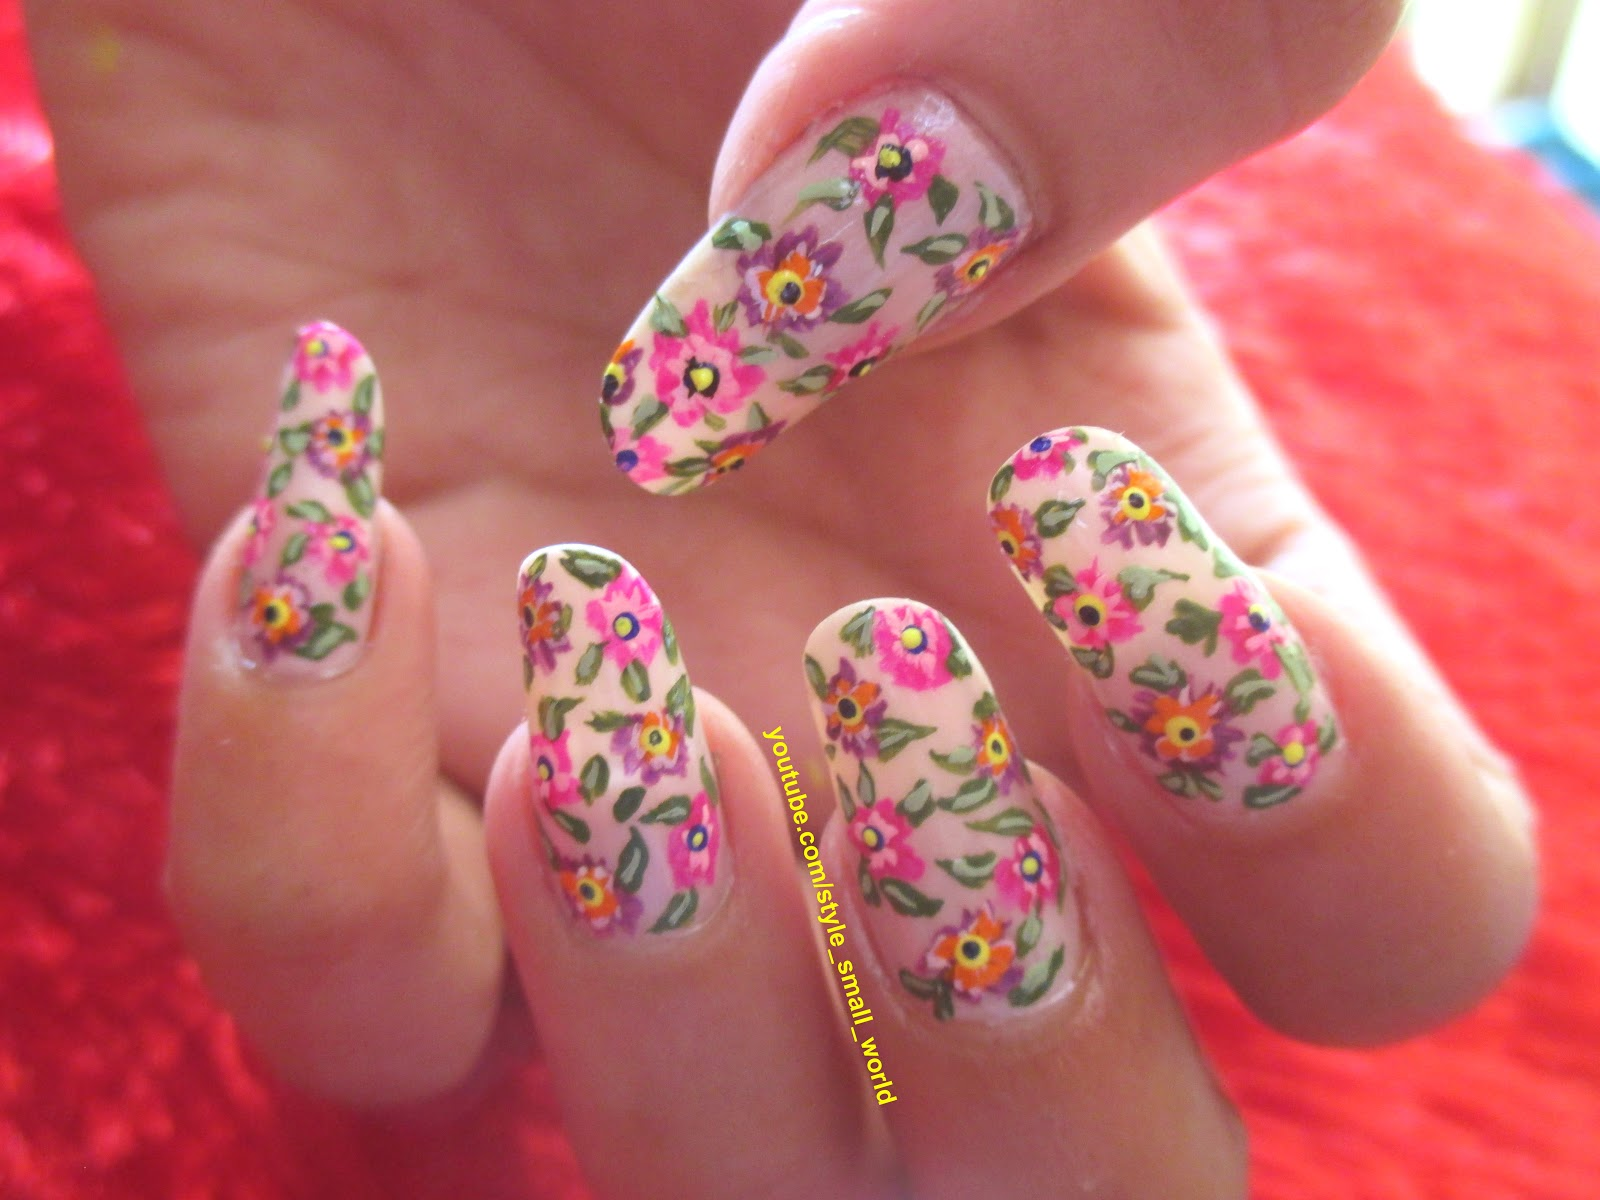 Style Small World...: Easy Floral Nail Art Design